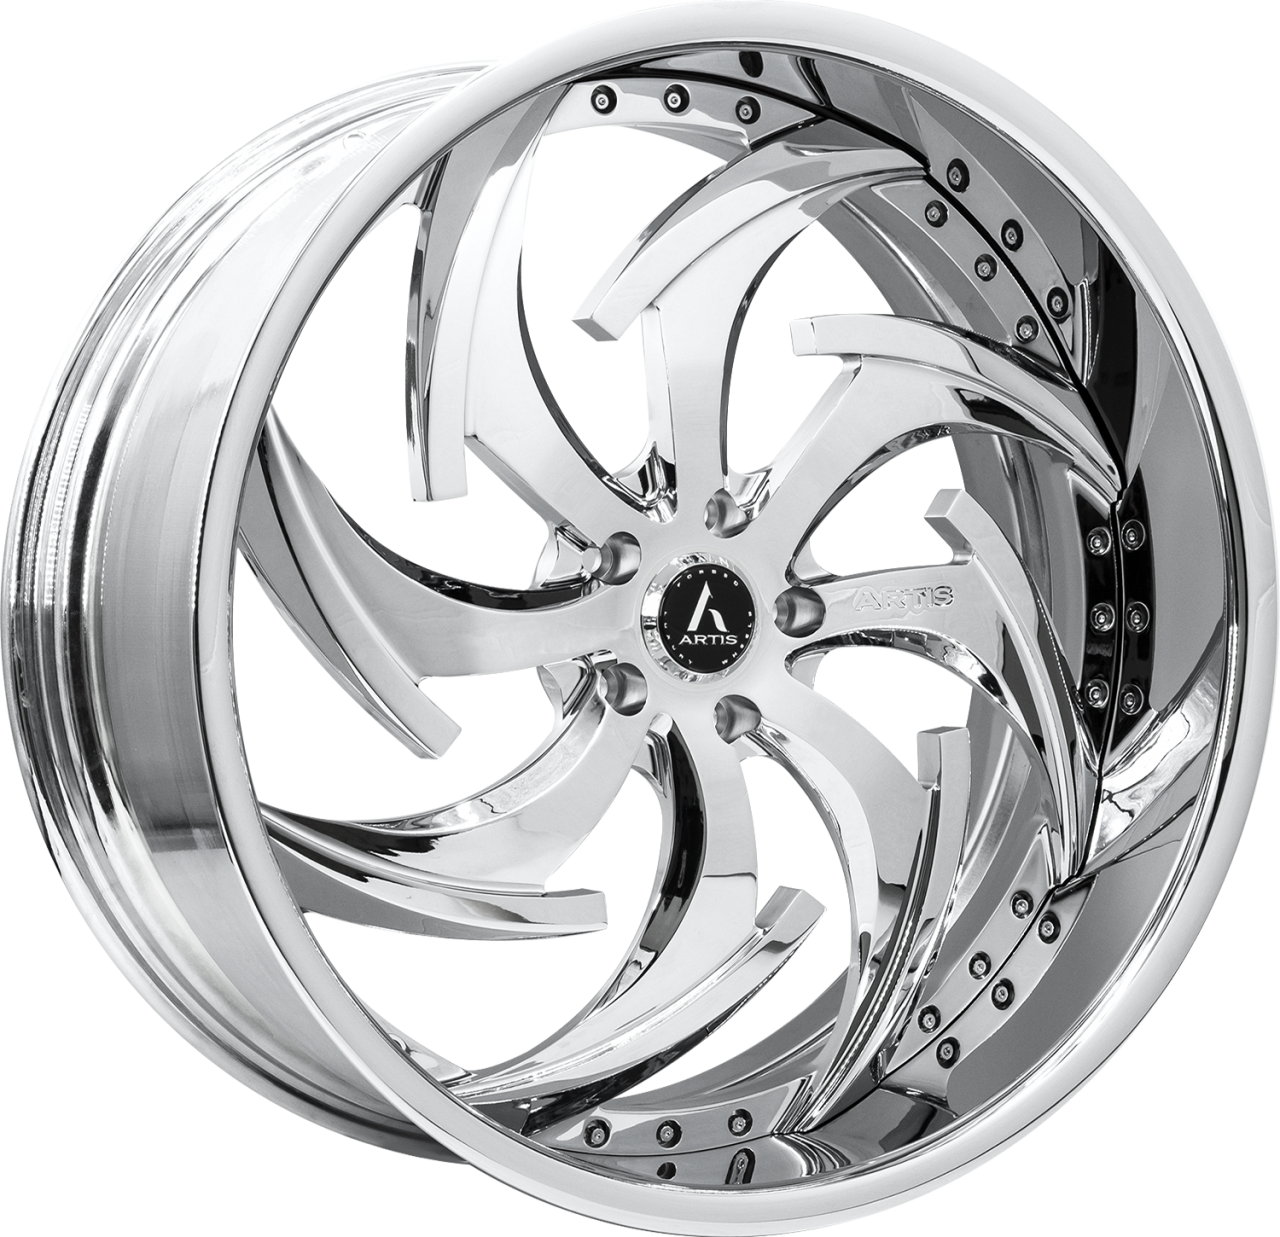 Artis Forged Dagger wheel with Chrome finish